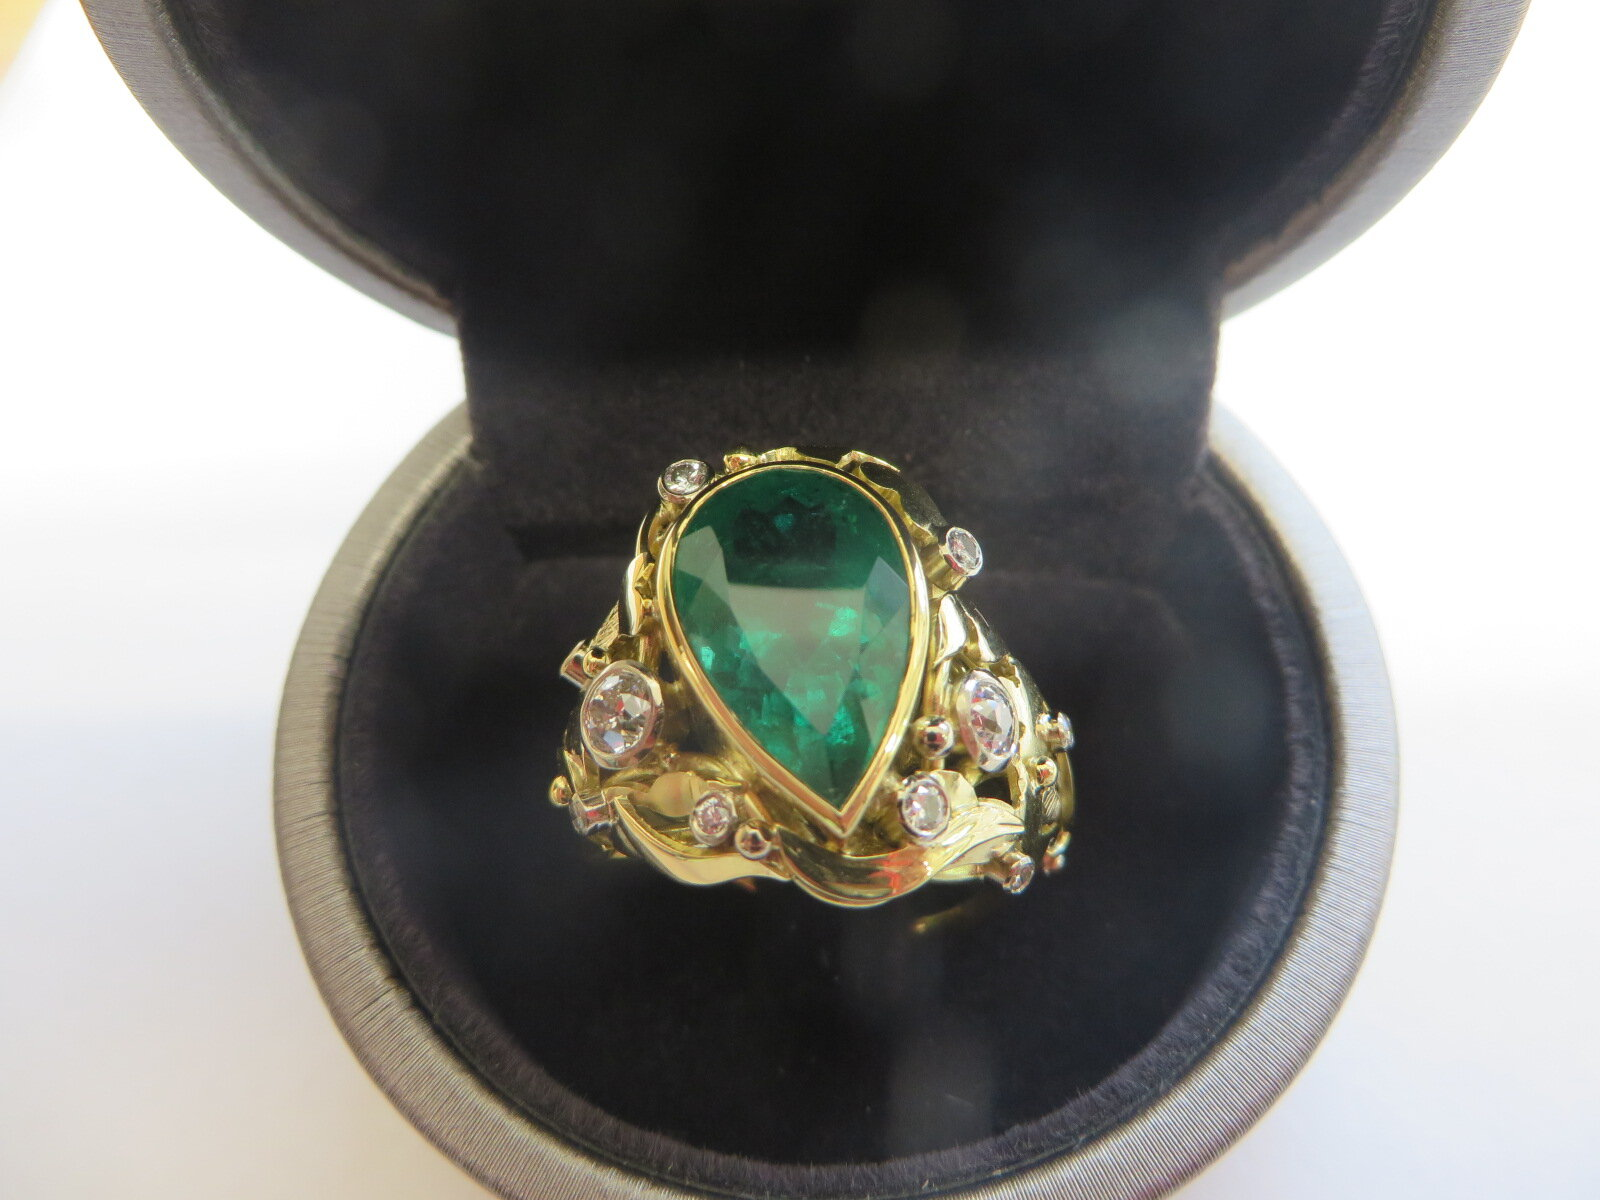 The finished ring ,which was quite spectacular due to the size of the center stone,a stunning Emerald surrounded by Diamonds also recovered from the clients old Jewellery.